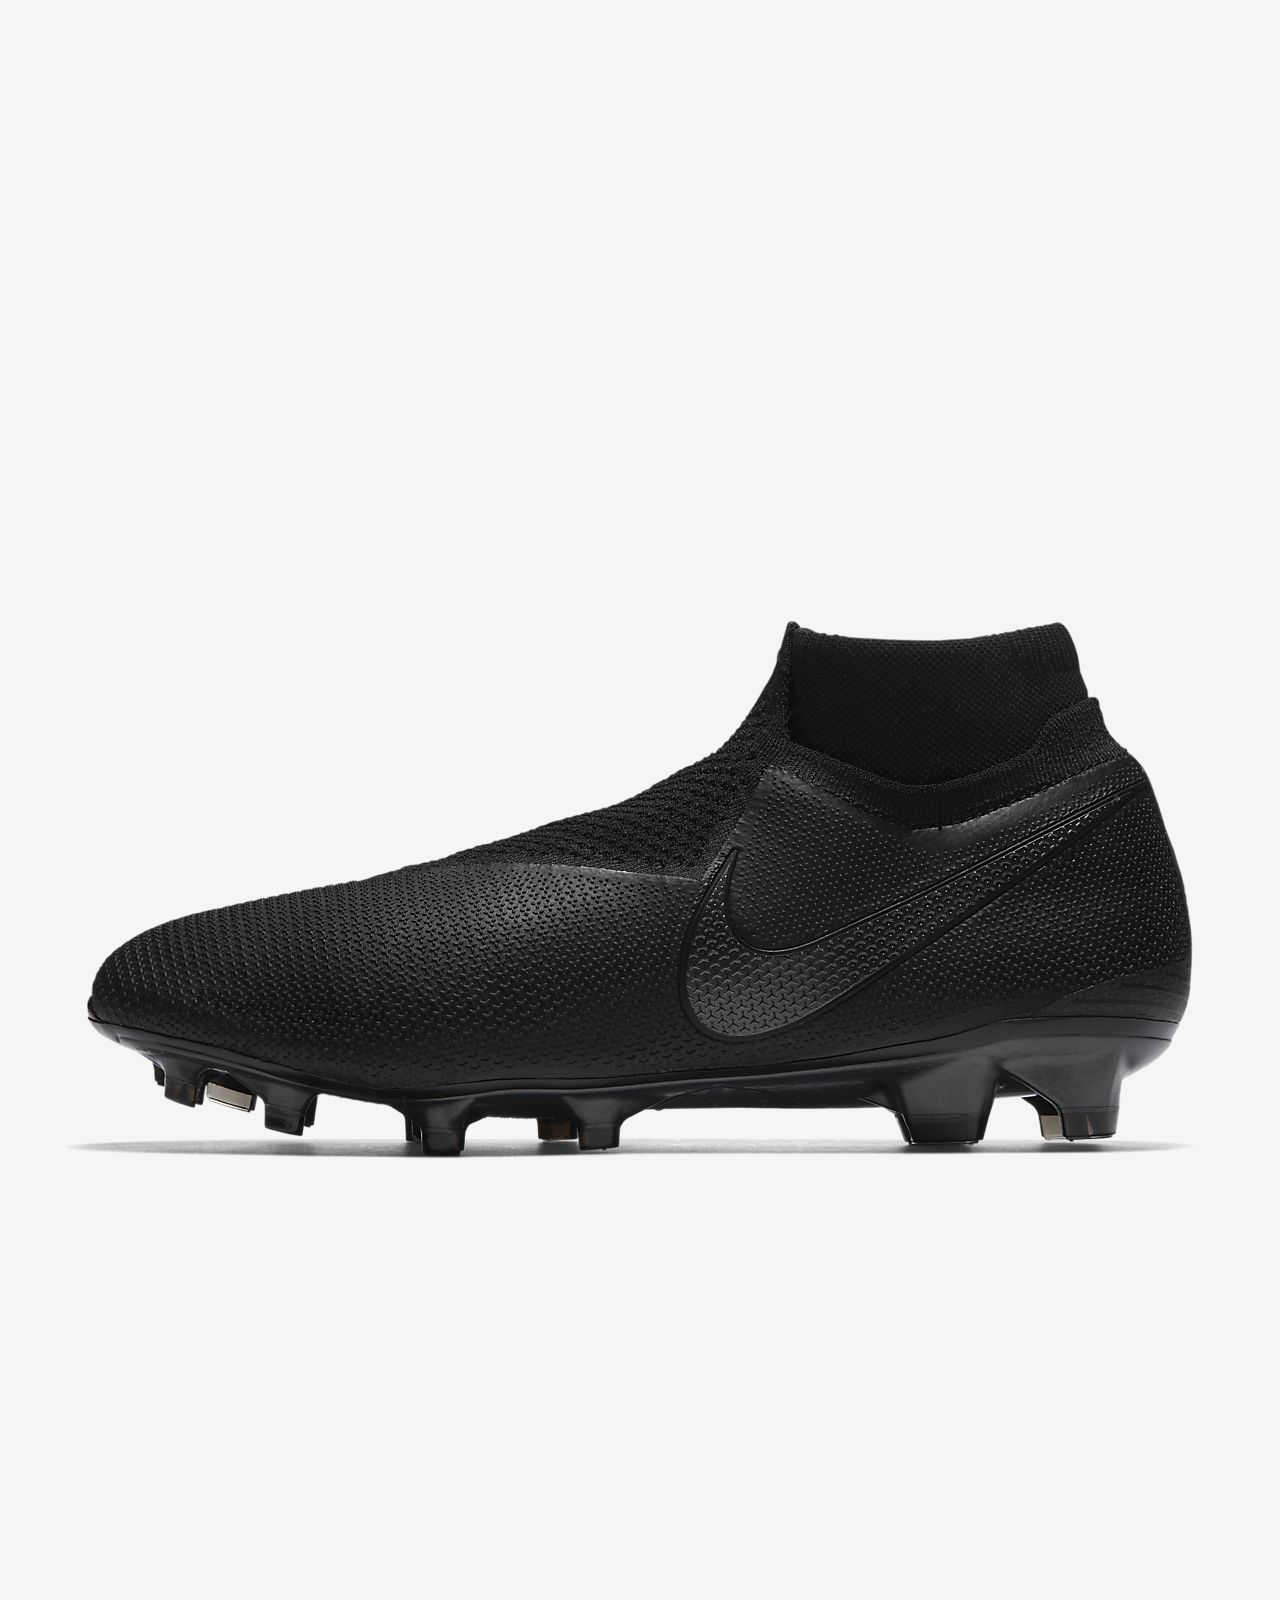 Nike PhantomVSN Elite Dynamic Fit Game Over FG Firm-Ground Soccer Cleat